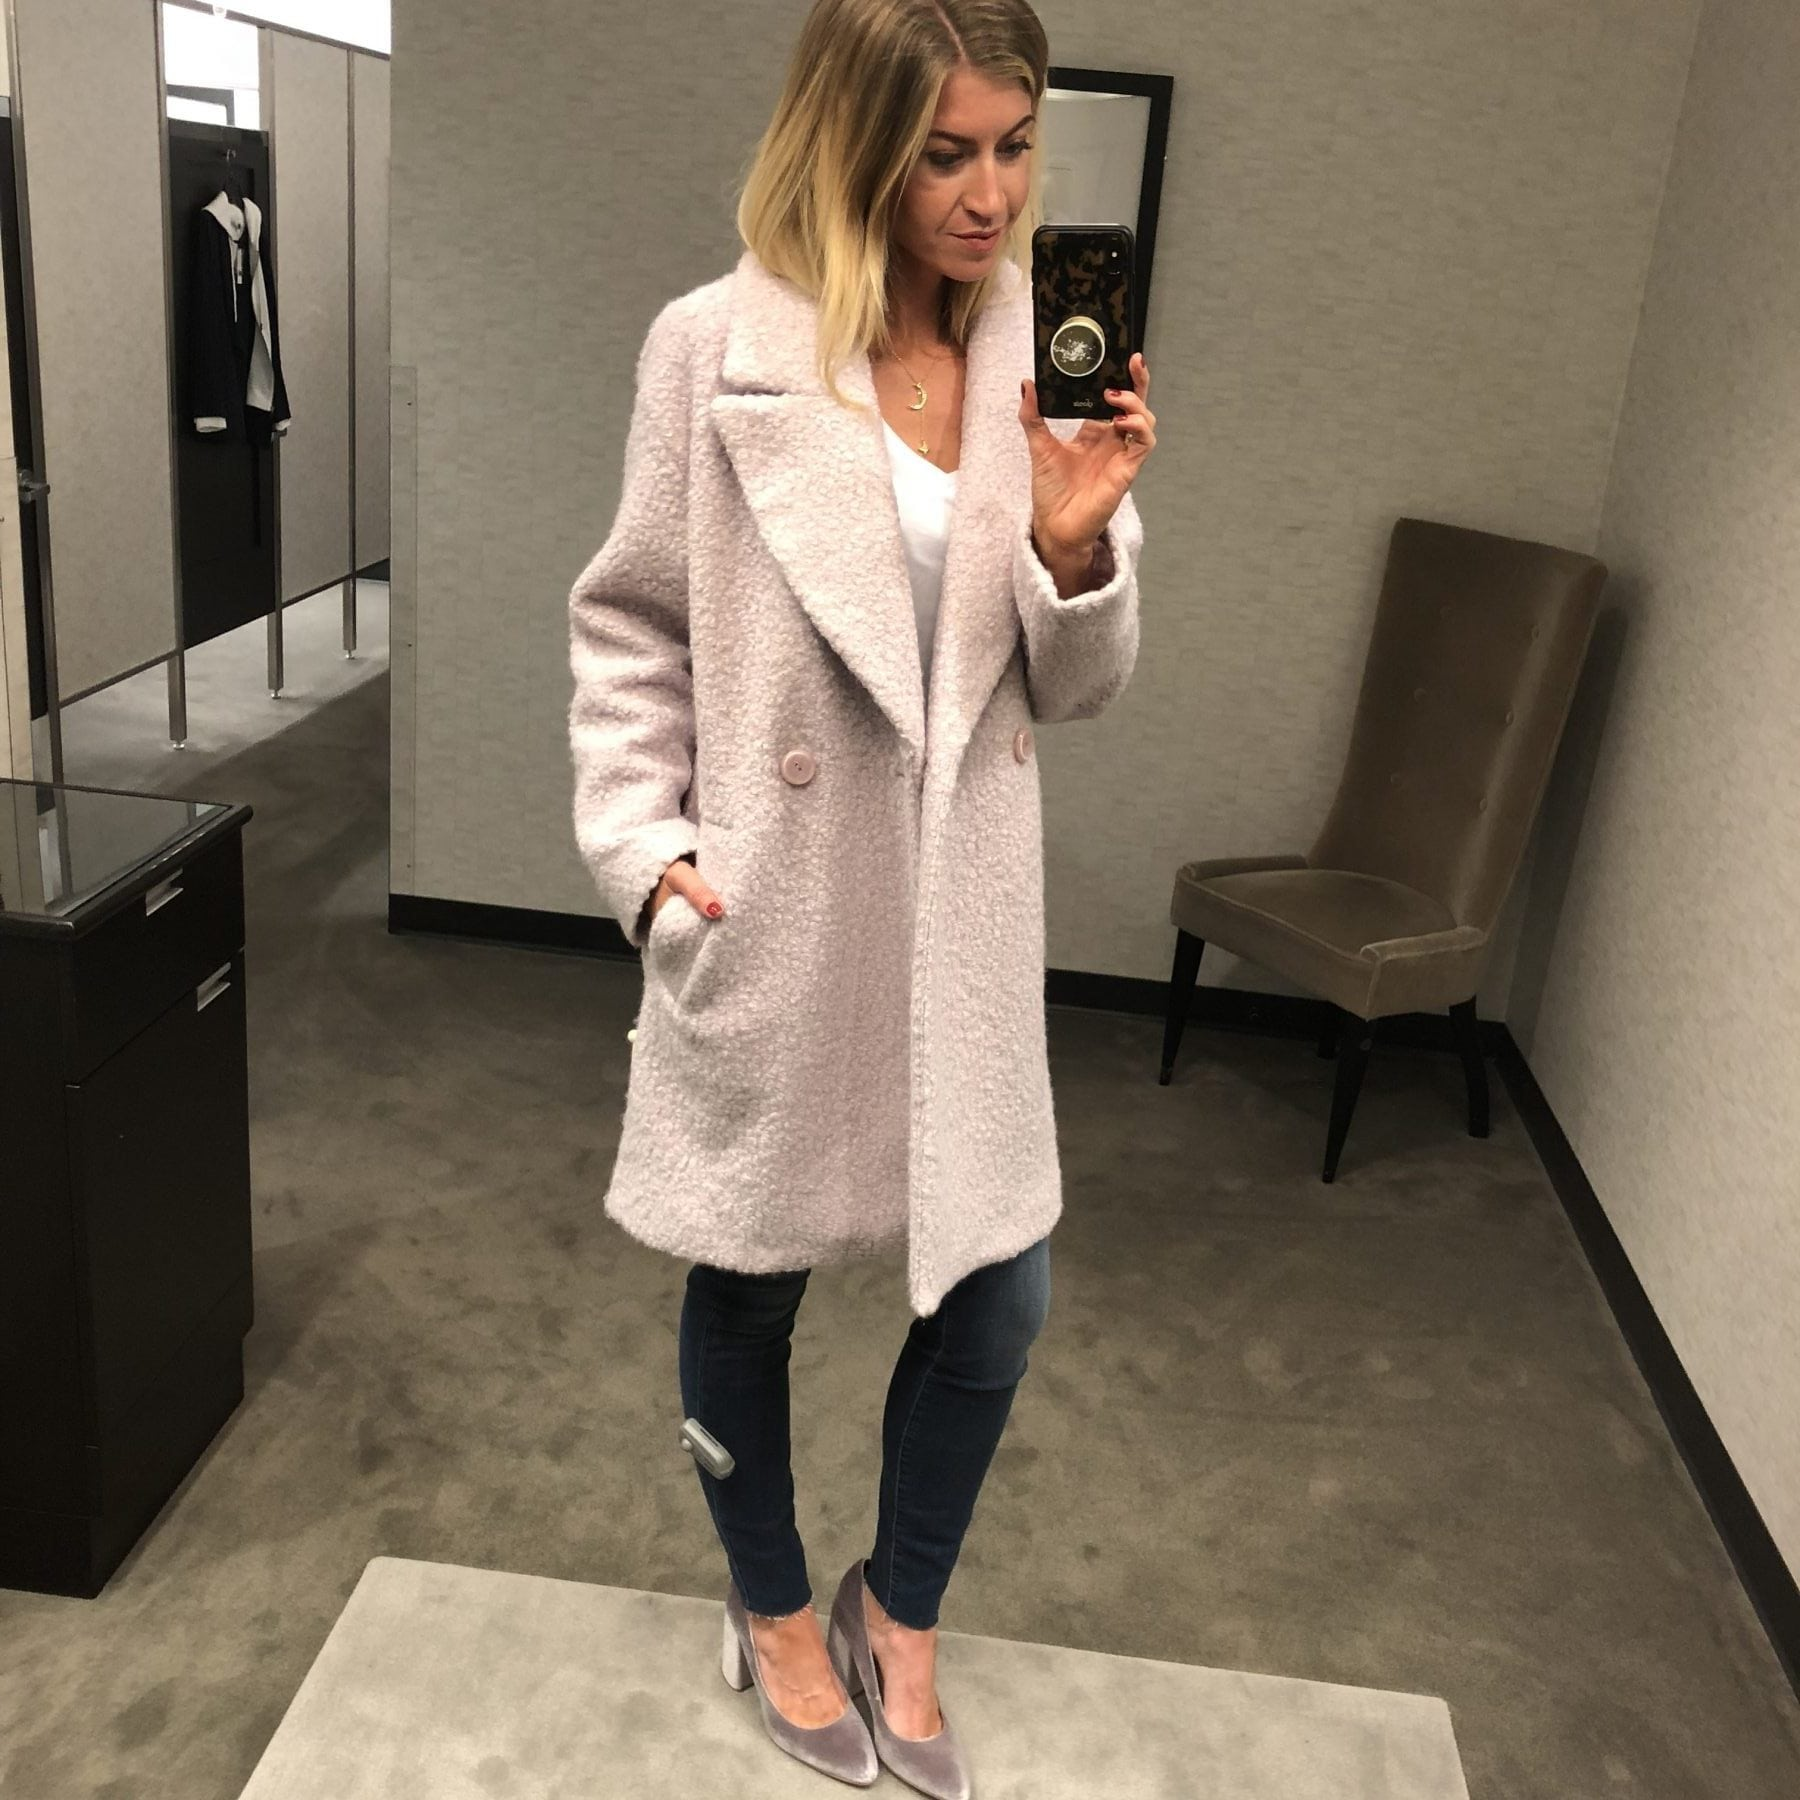 Nordstrom Anniversary Sale Outfits: Lavender Coat